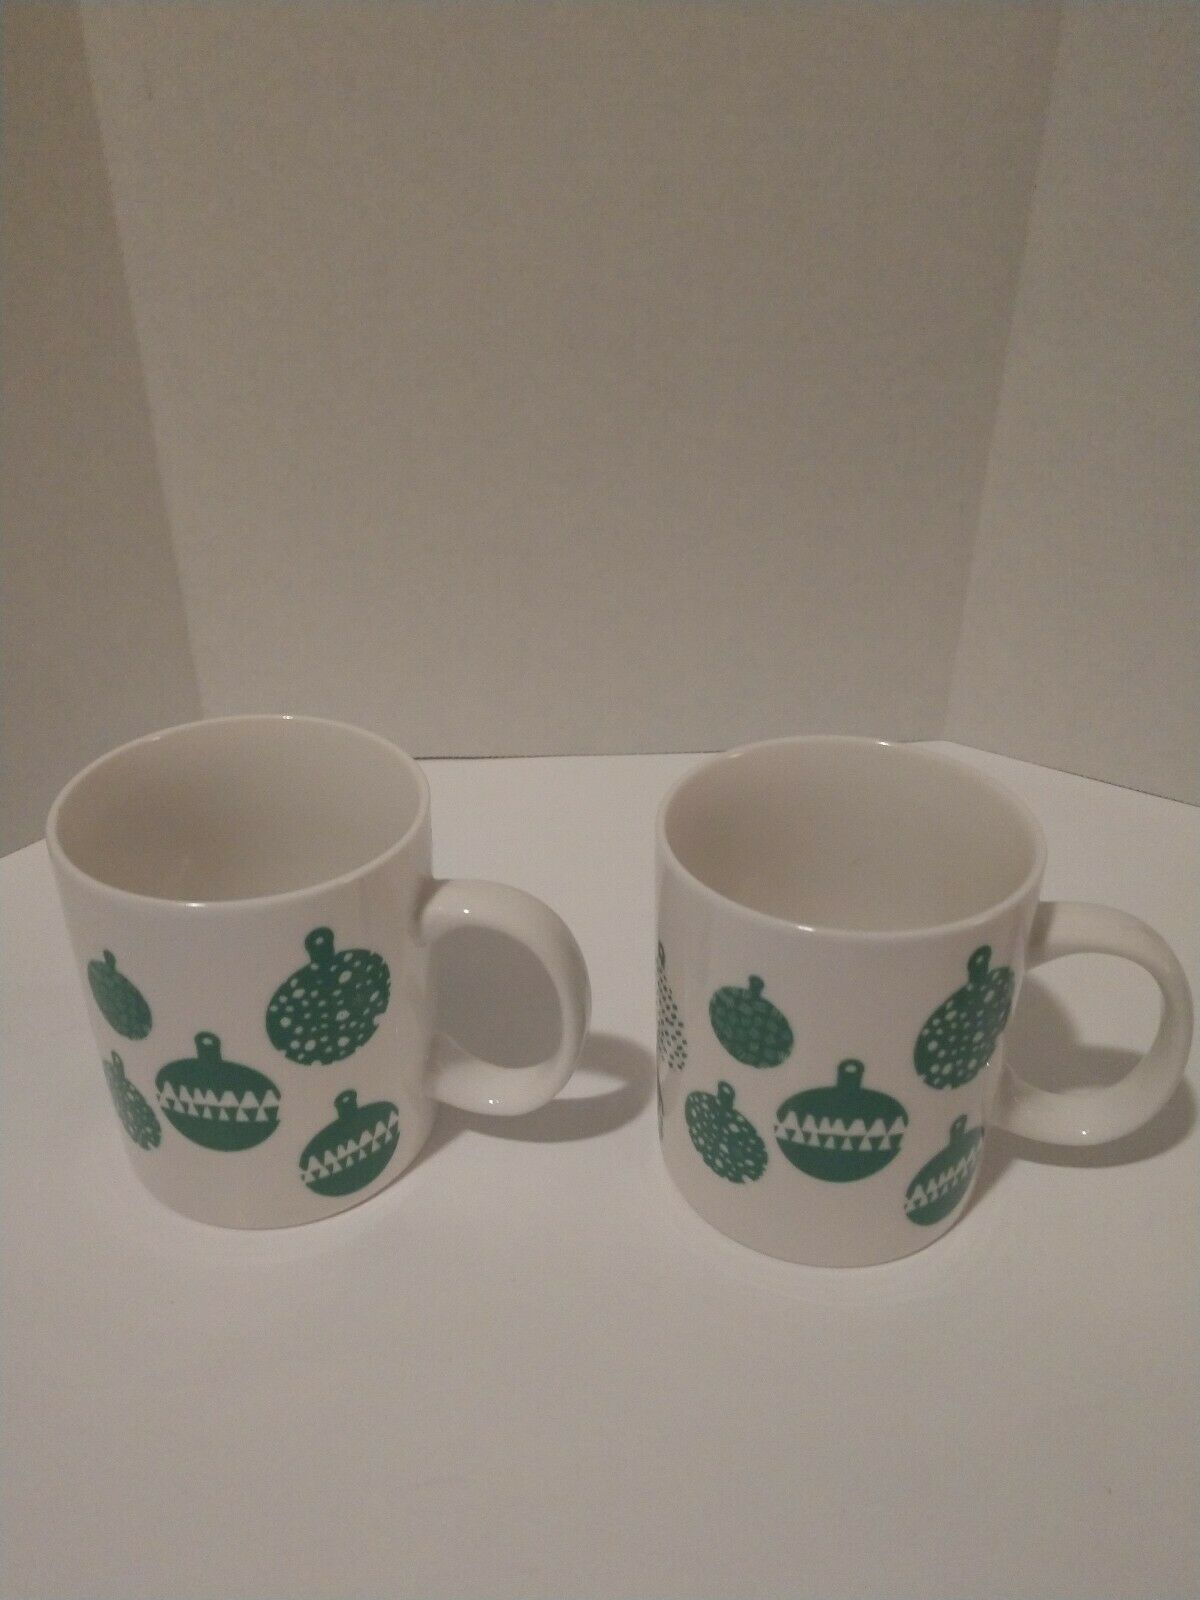 Primary image for 2 Starbucks Coffee Mugs Ornaments Cups 2016 Green White 12oz Christmas EUC !!